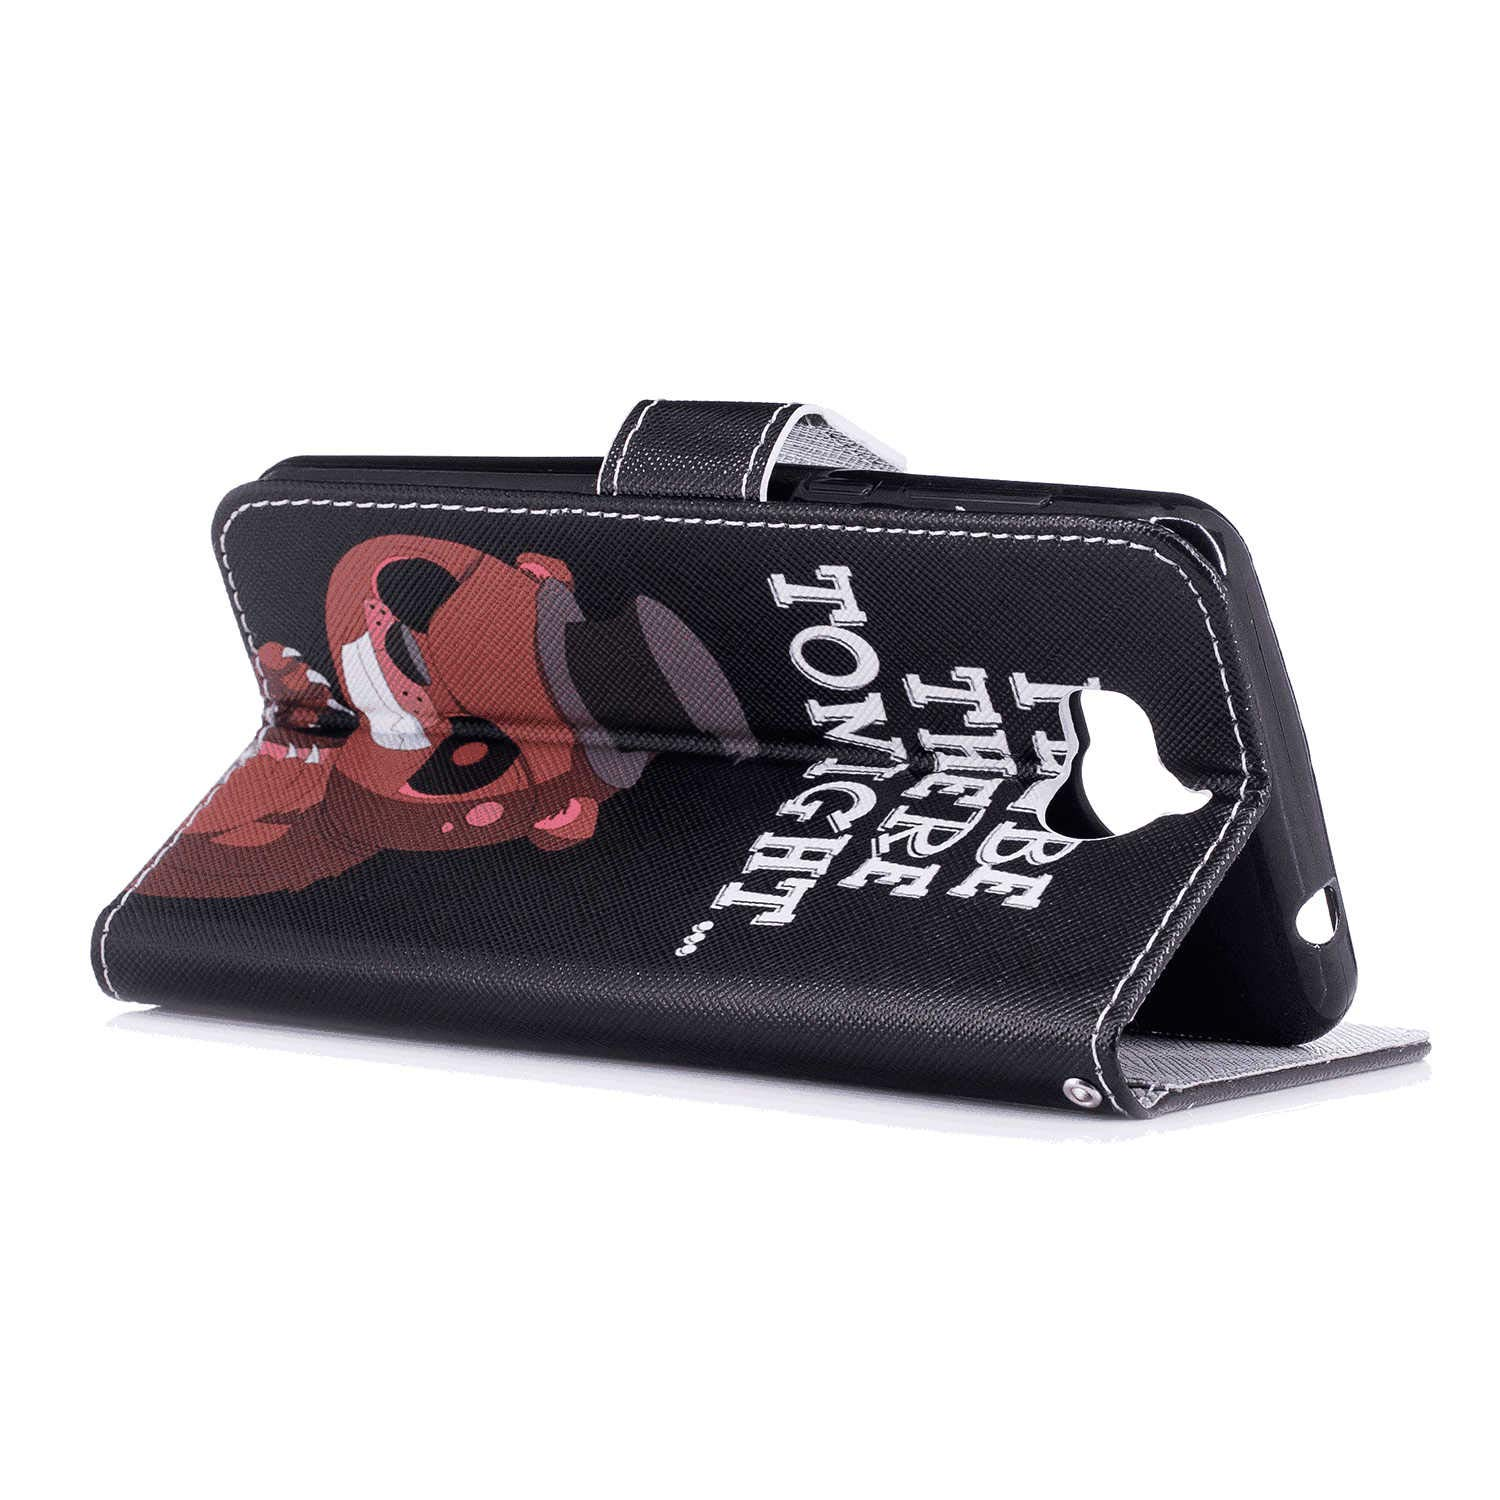 Huawei P10 Flip Case Cover for Huawei P10 Leather Extra-Durable Business Kickstand Mobile Phone Cover Card Holders with Free Waterproof-Bag Business